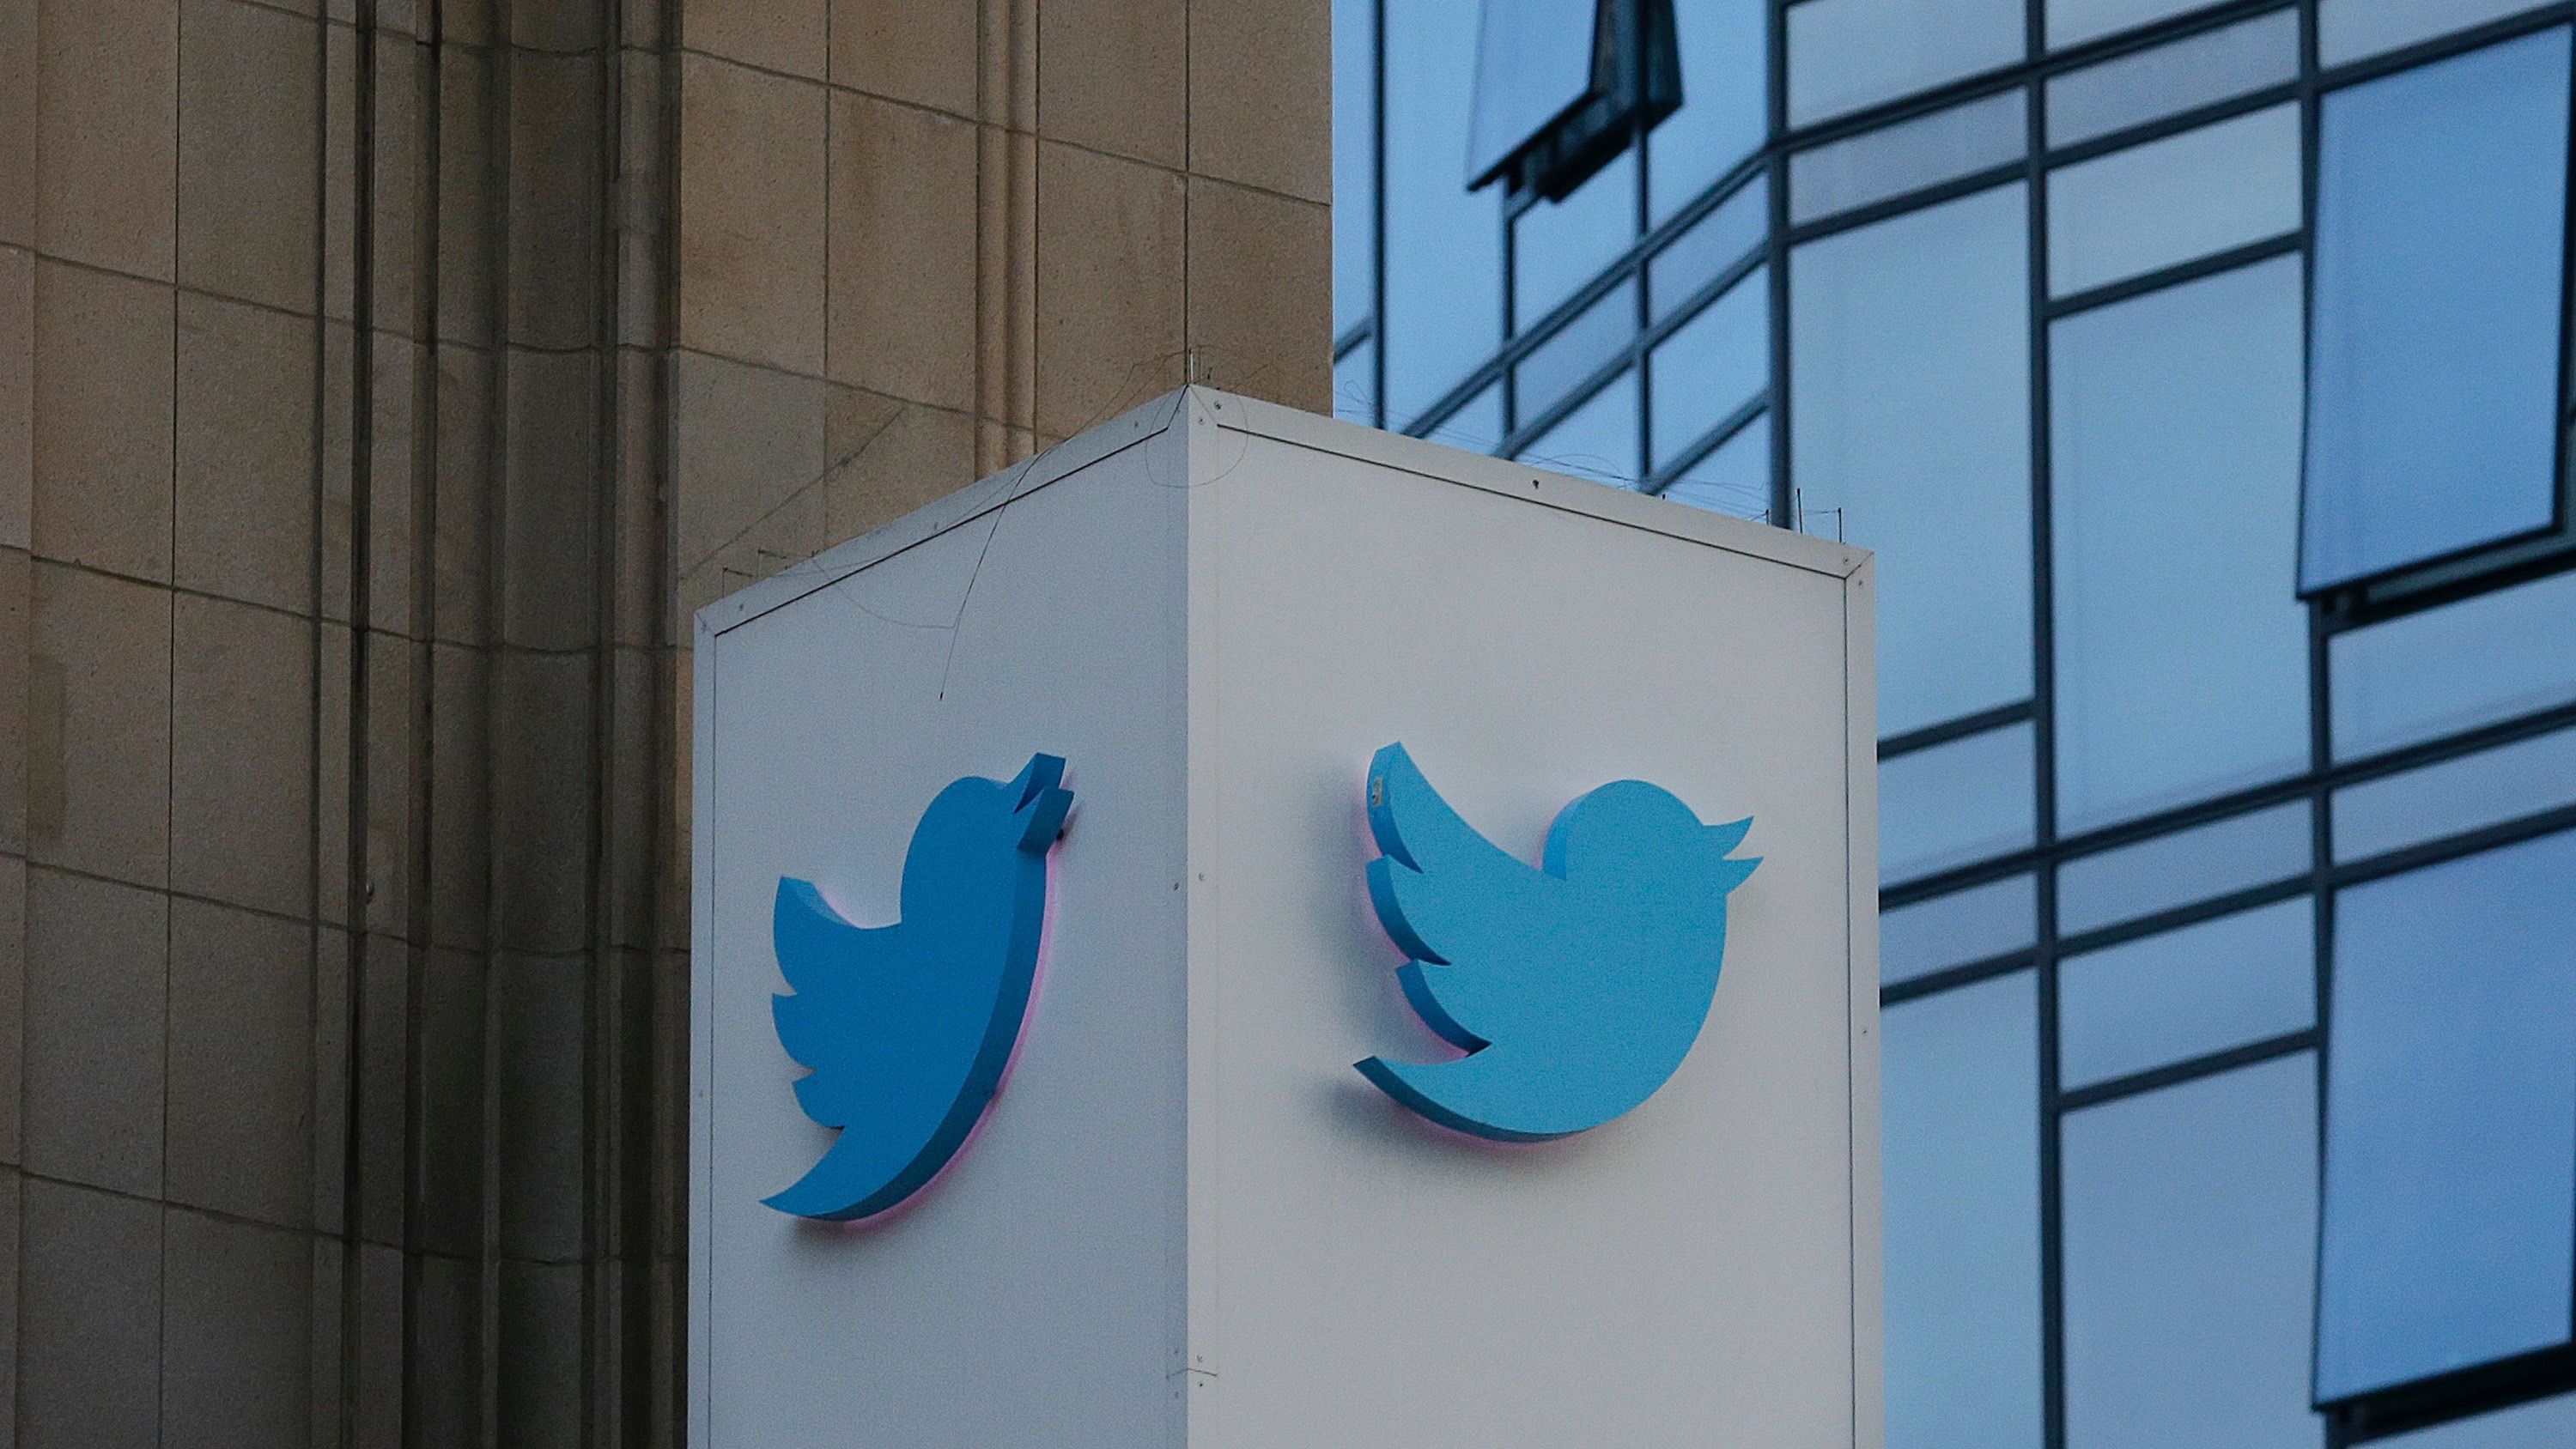 A Twitter sign is shown outside of its headquarters in San Francisco, Wednesday, Oct. 26, 2016. (AP Photo/Jeff Chiu)